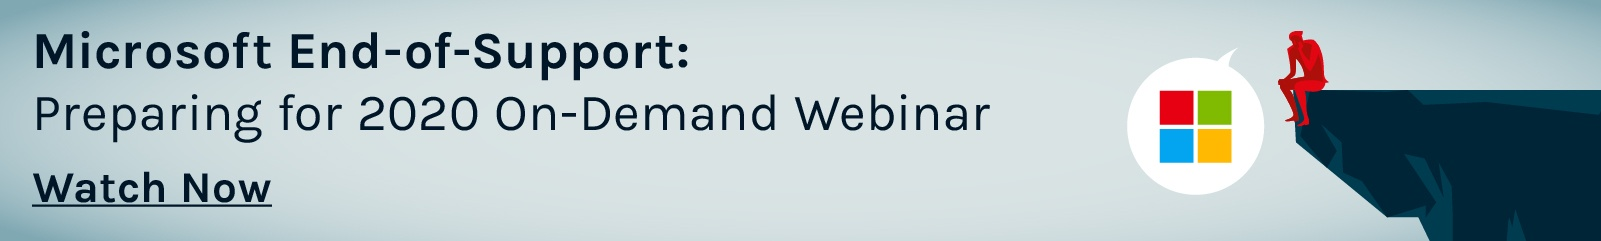 Microsoft End-of-Support On-Demand Webinar Link